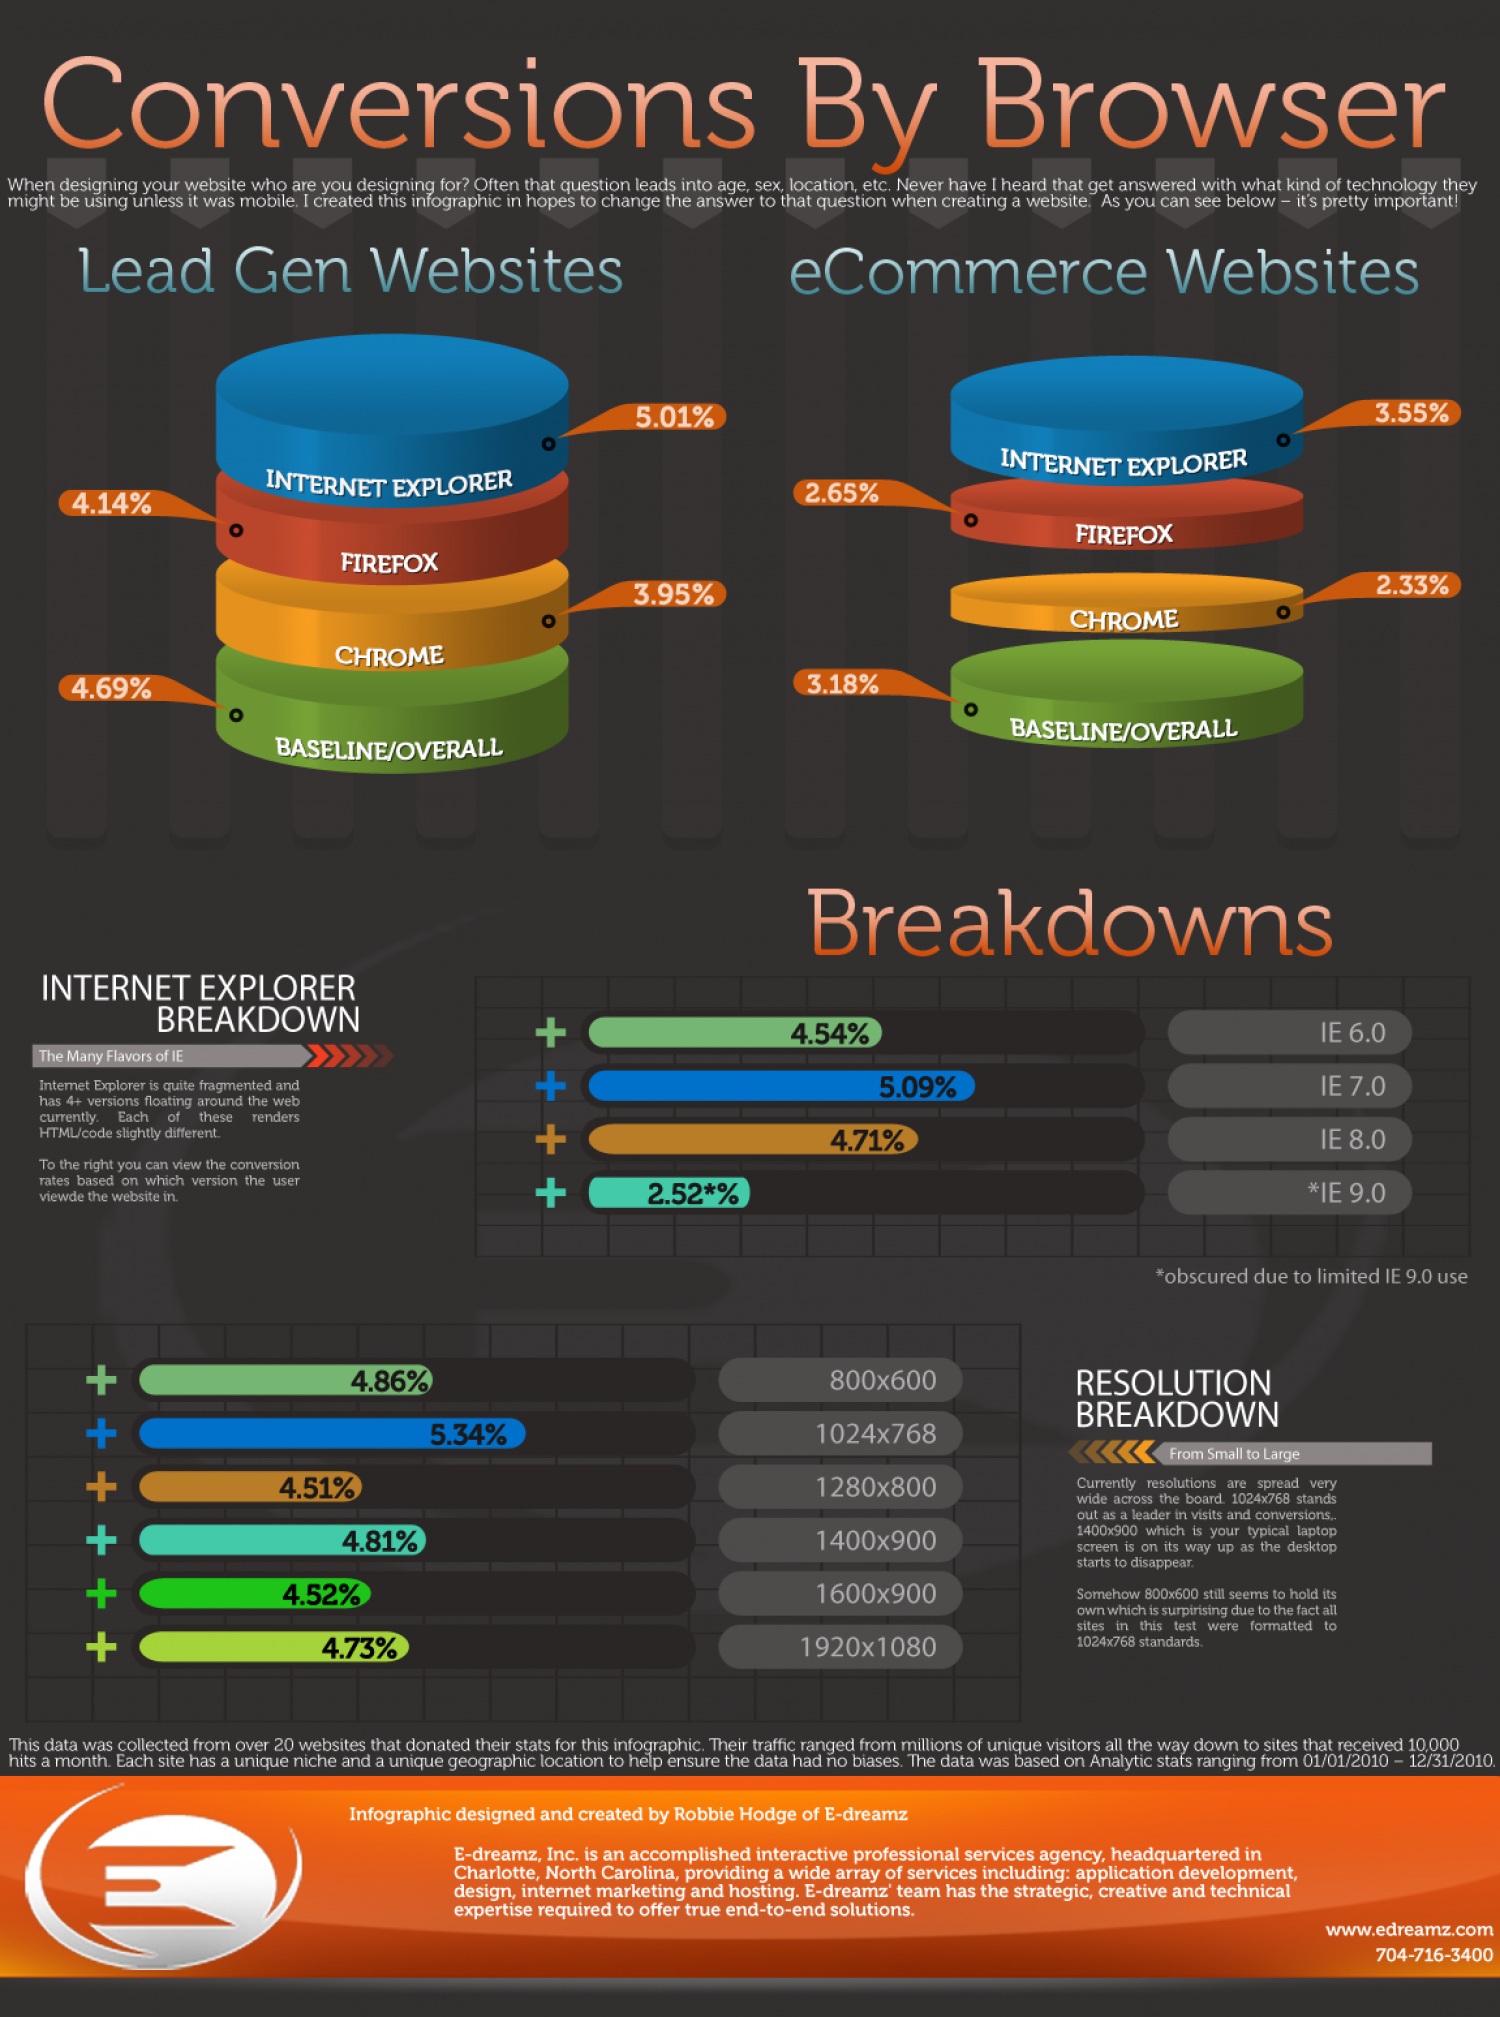 Conversions By Browser Infographic